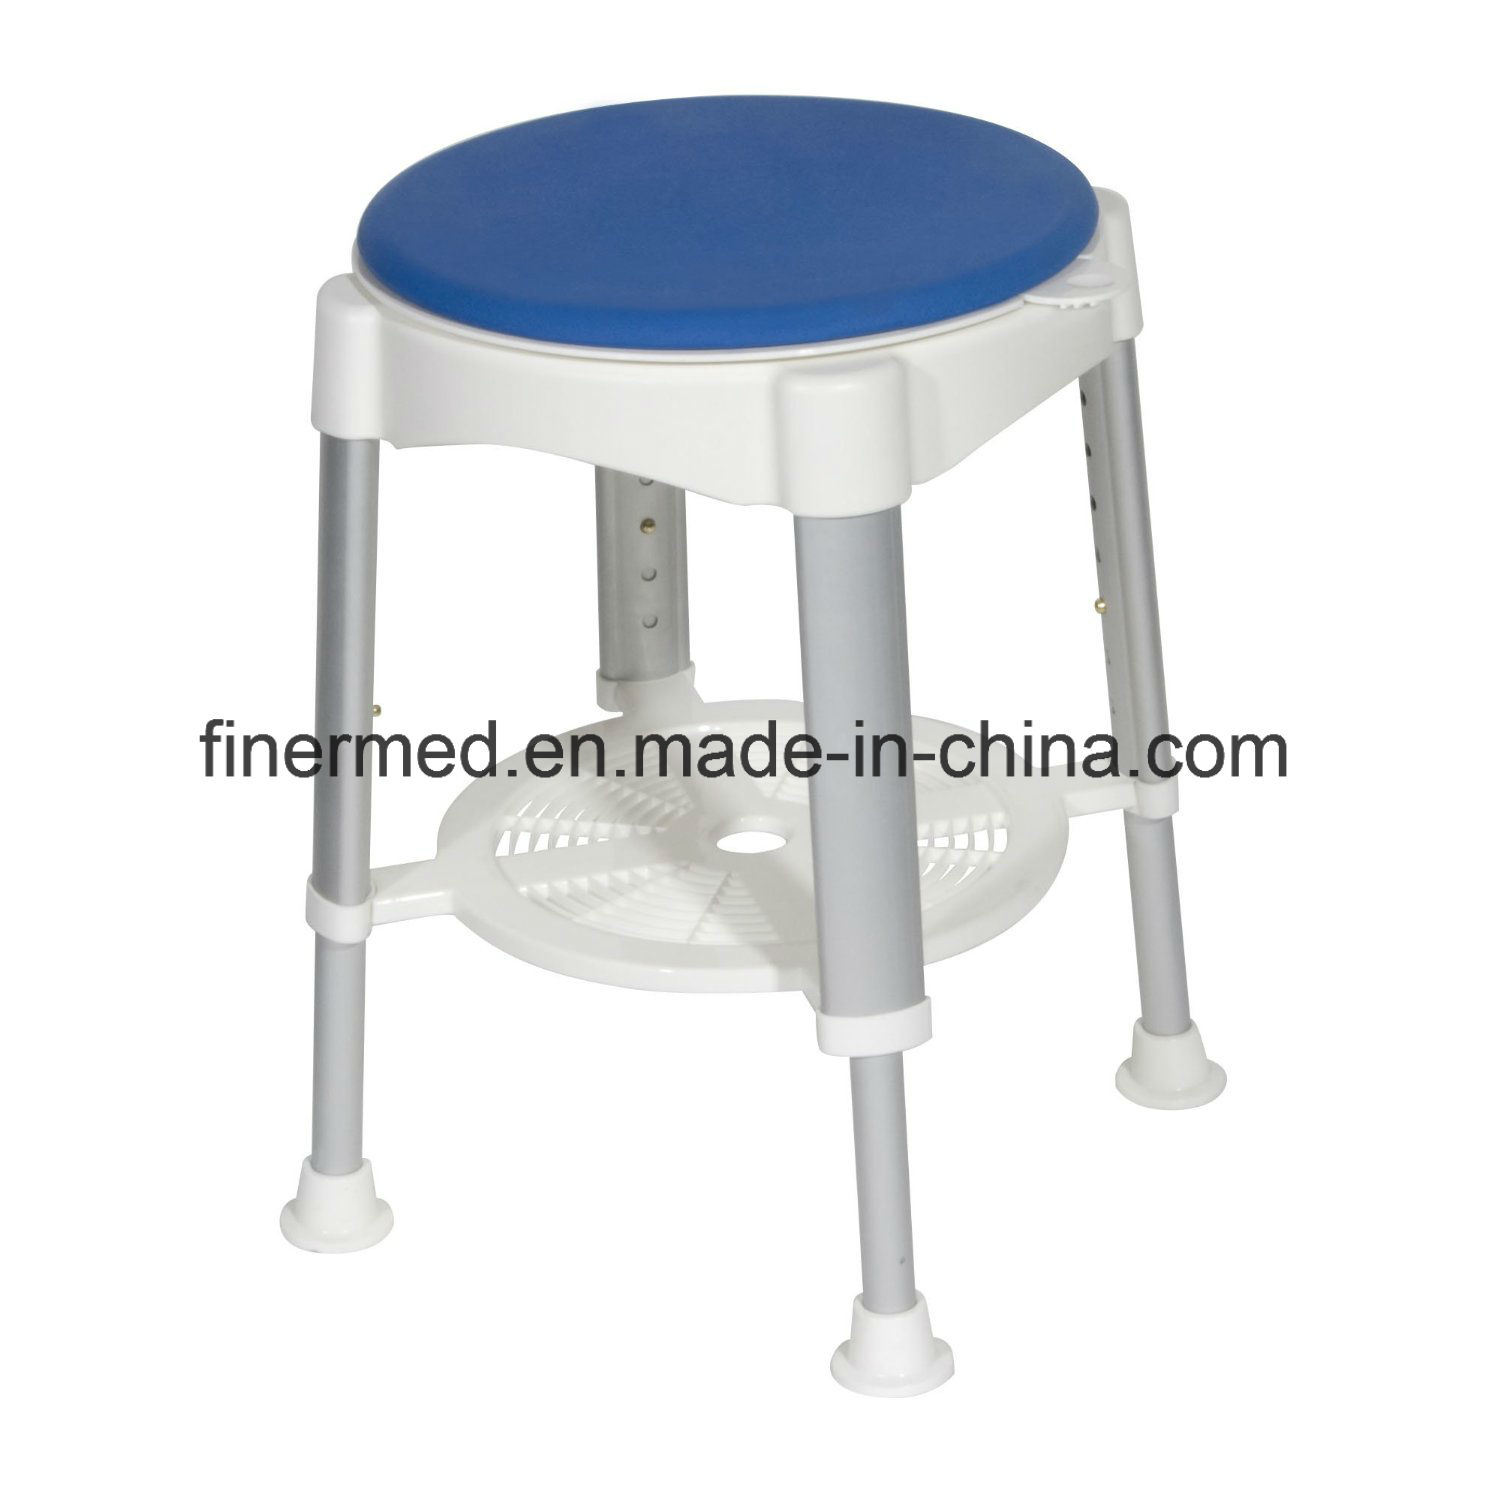 Round Circular Adjustable Shower Stool